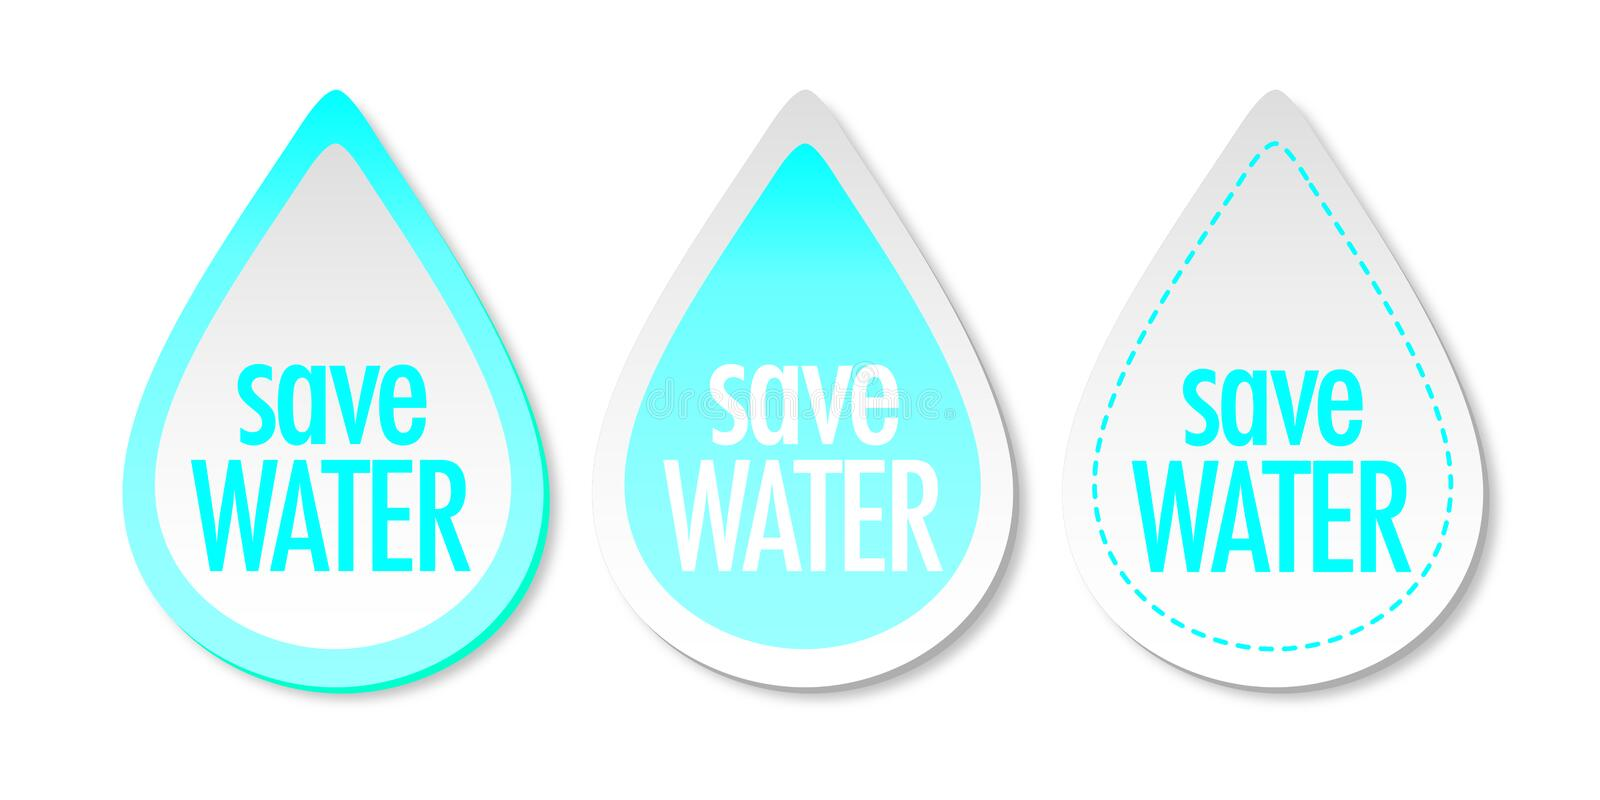 Save water stickers vector illustration